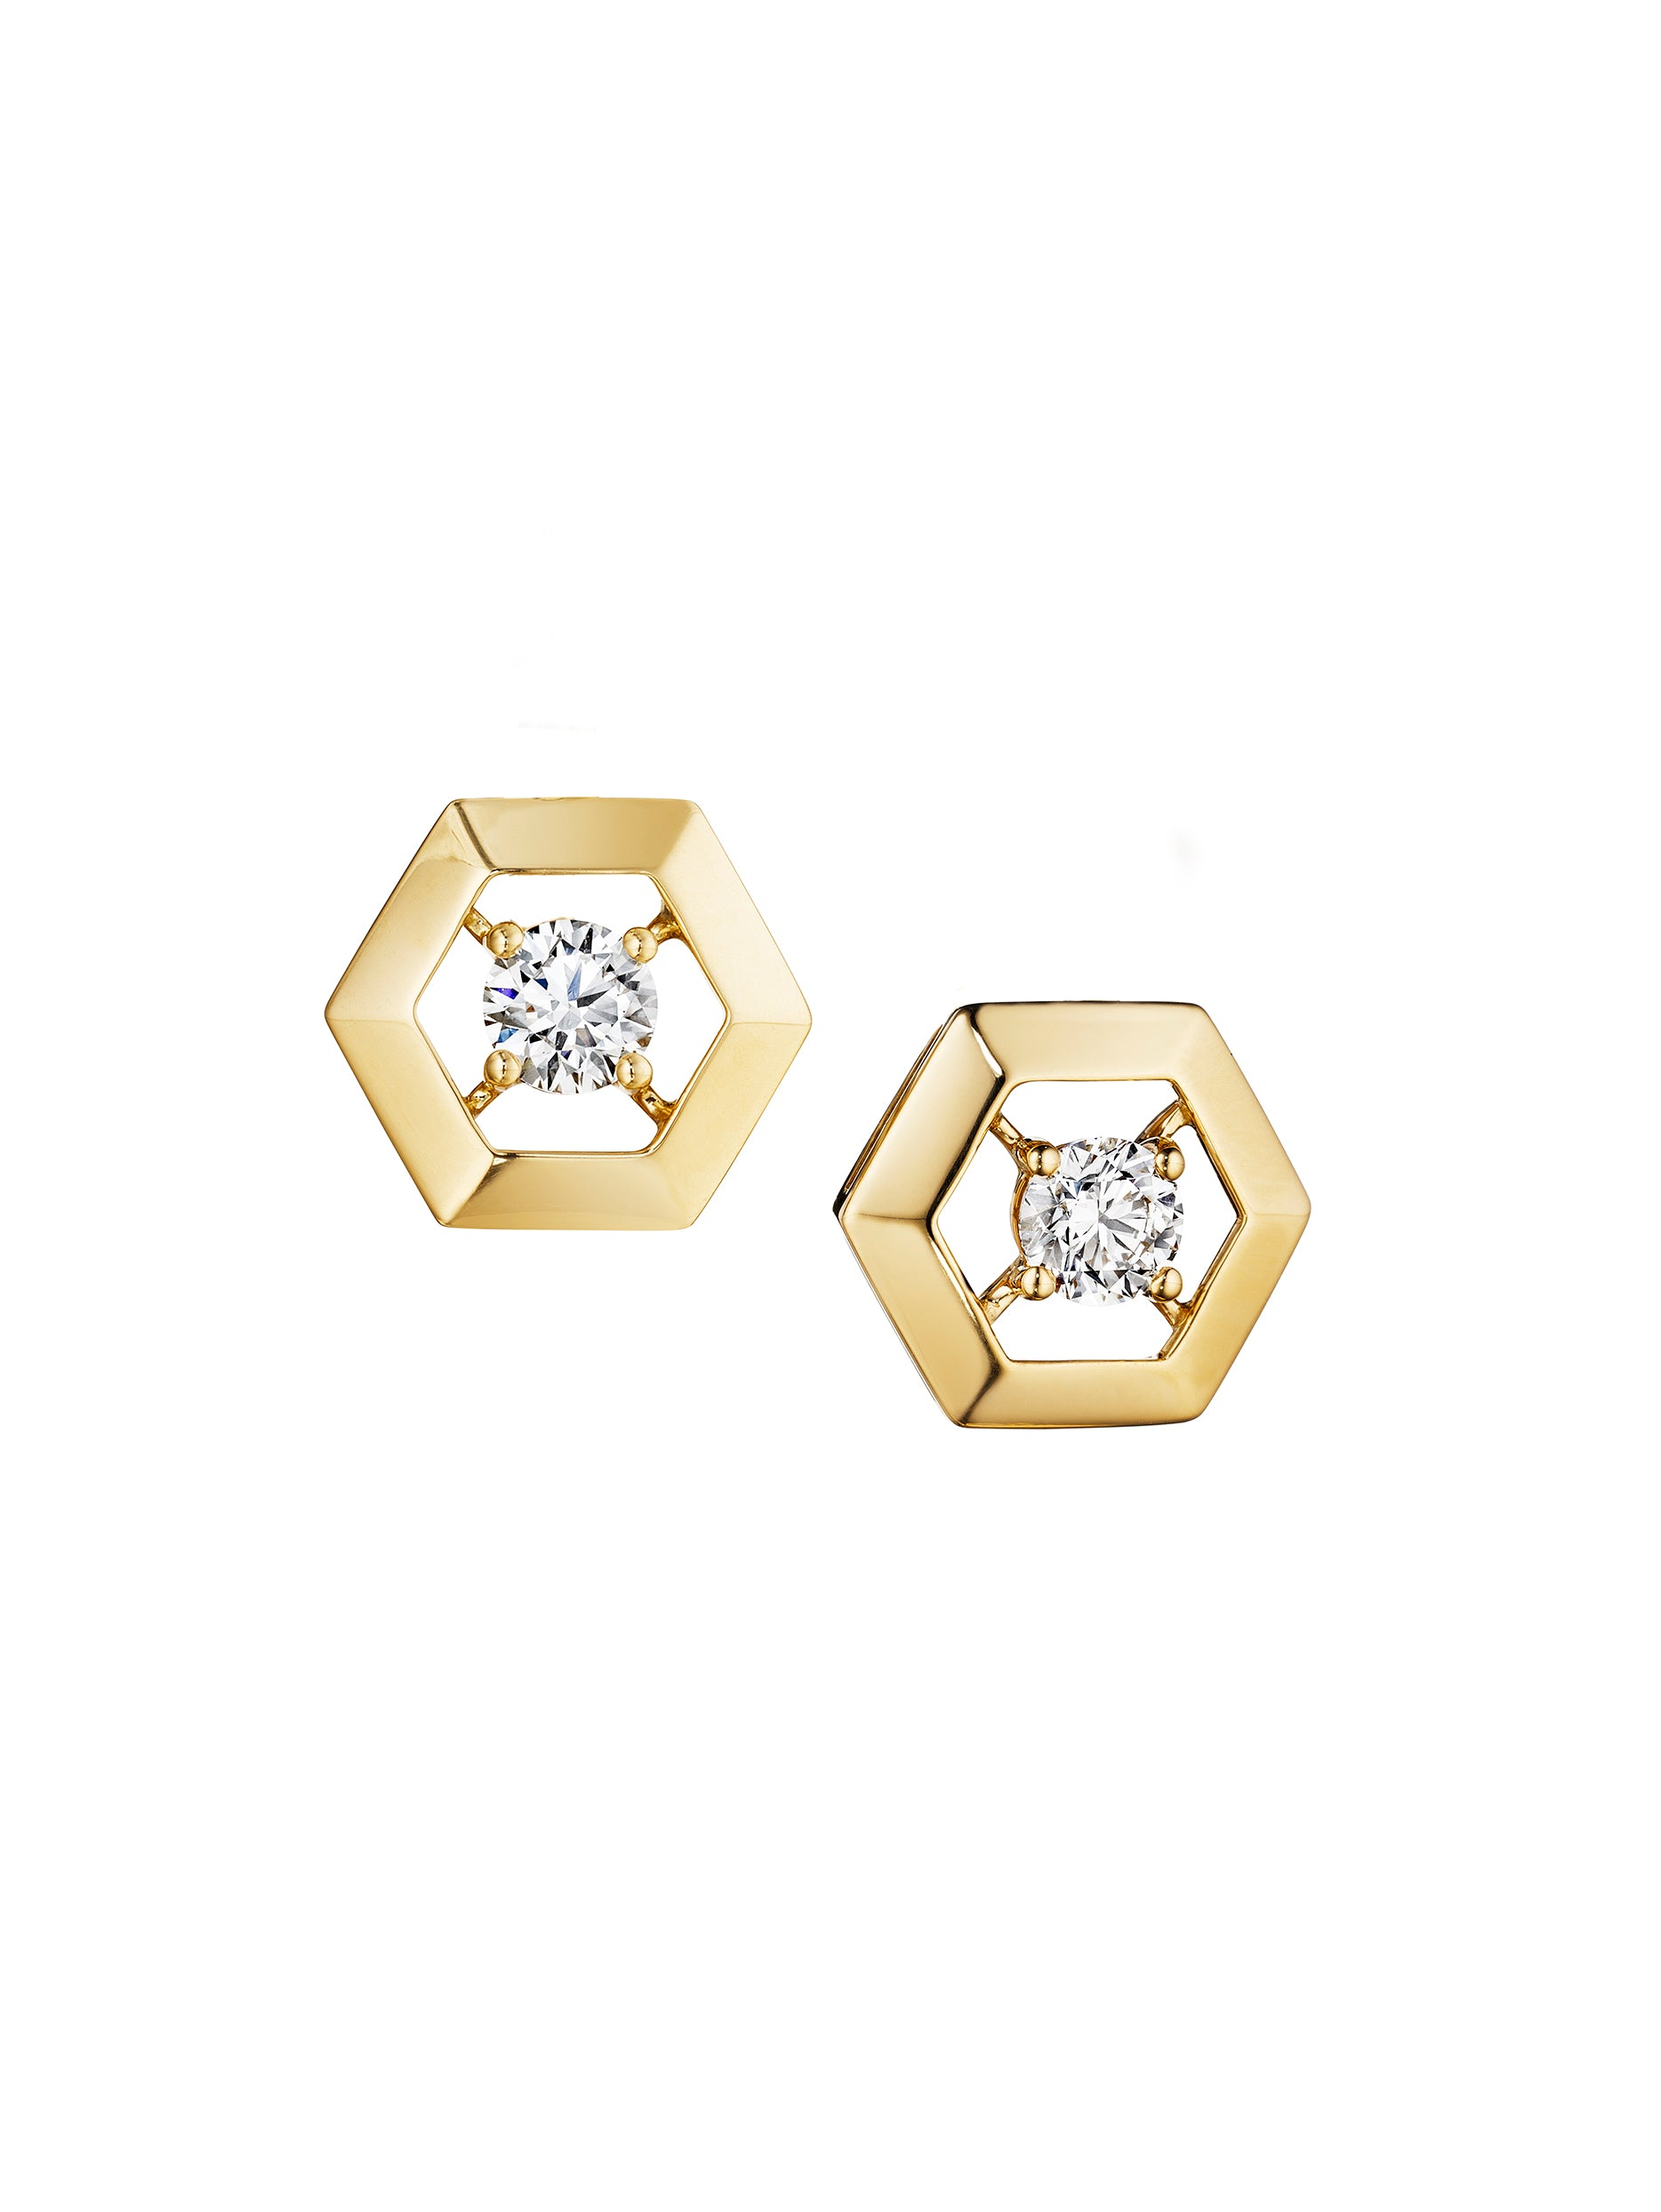 au il fullxfull hexagon zoom listing earrings